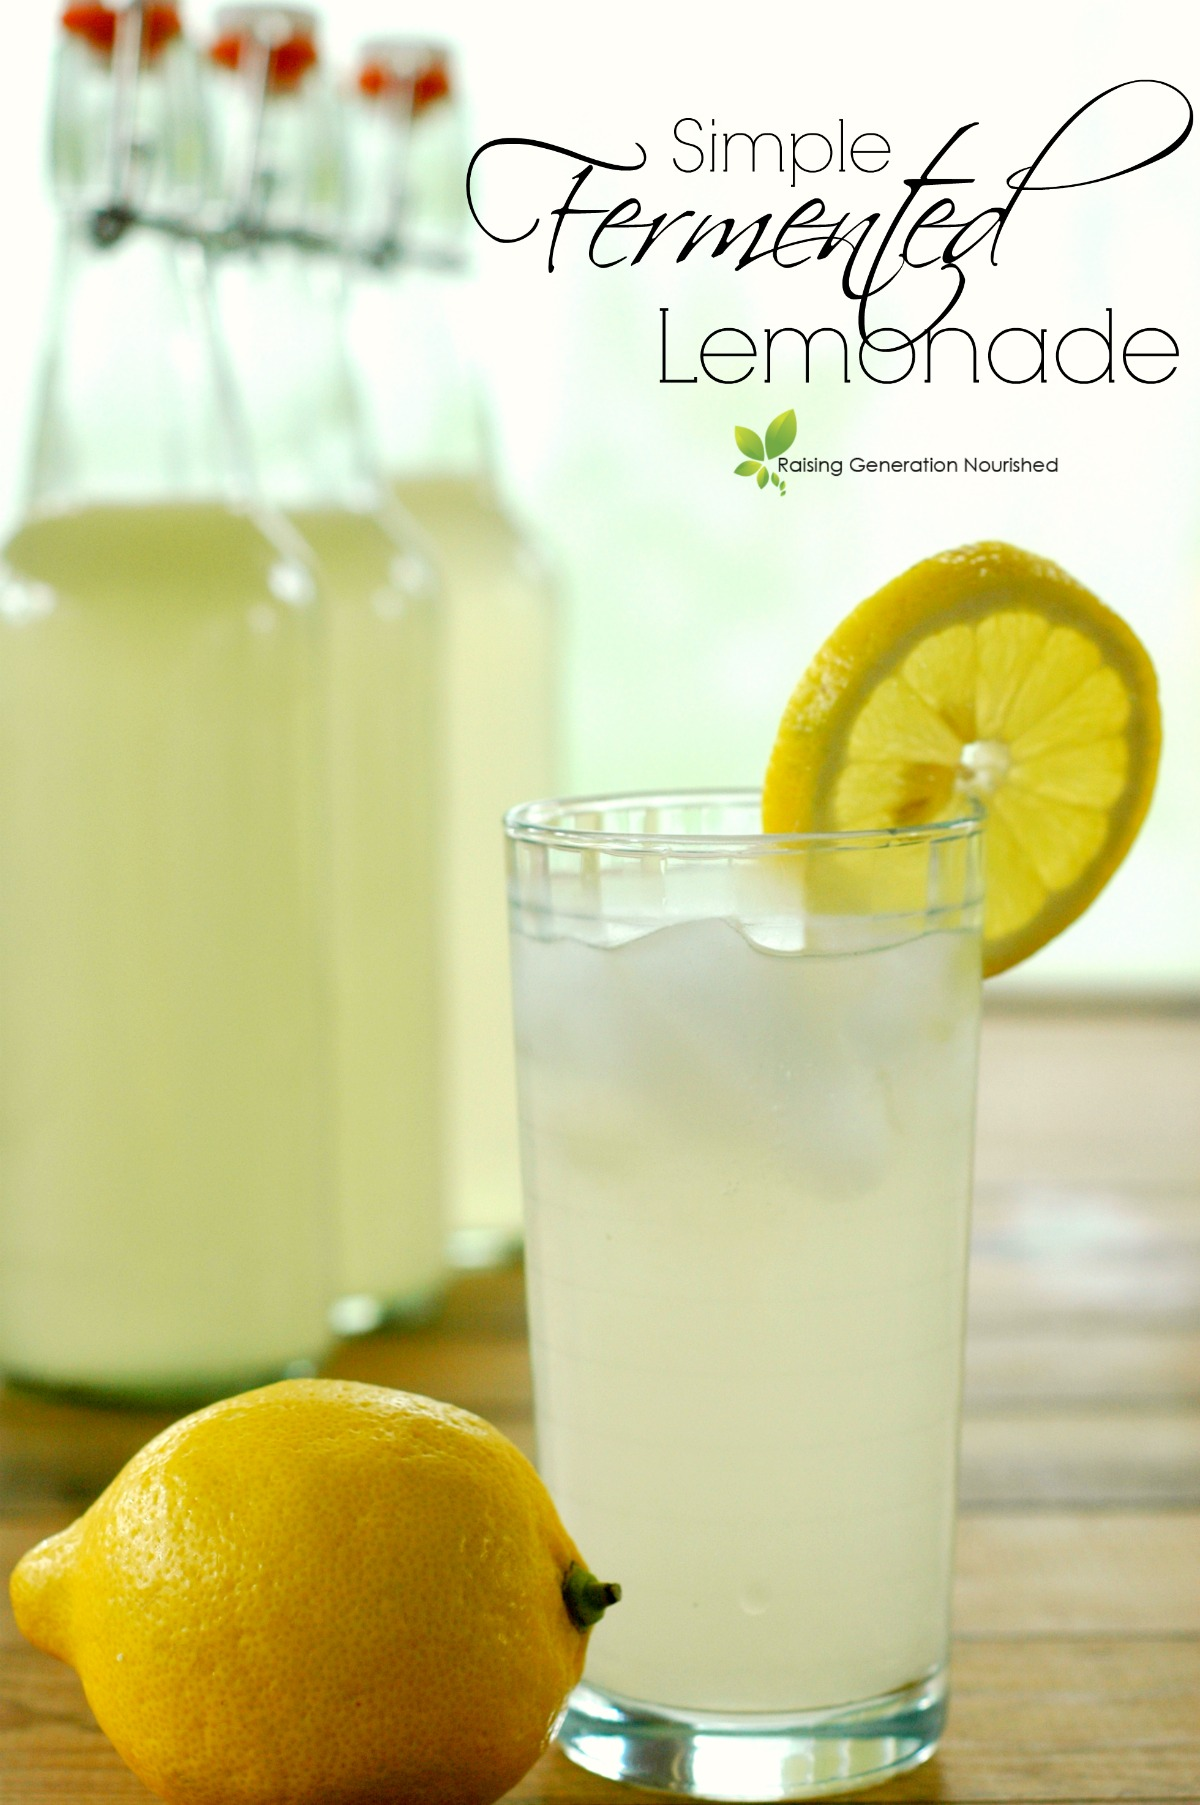 Simple Fermented Lemonade